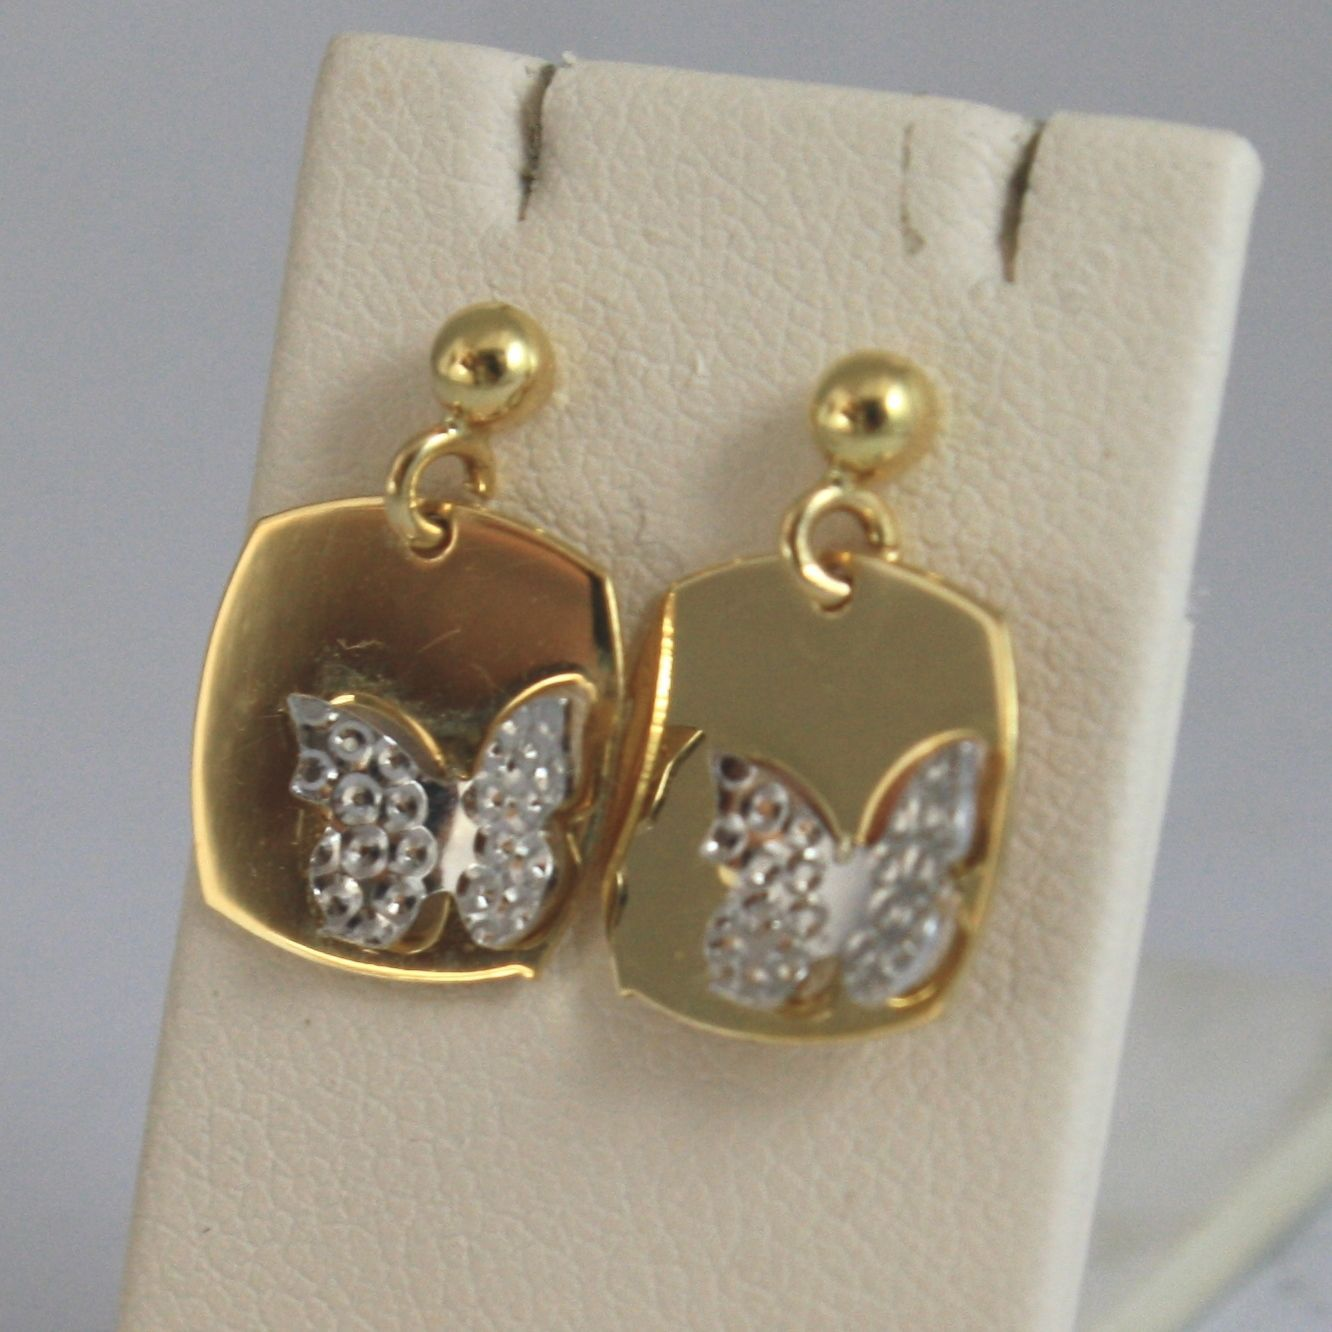 18K SOLID YELLOW AND WHITE GOLD EARRINGS WITH WORKED BUTTERFLY MADE IN ITALY 18K